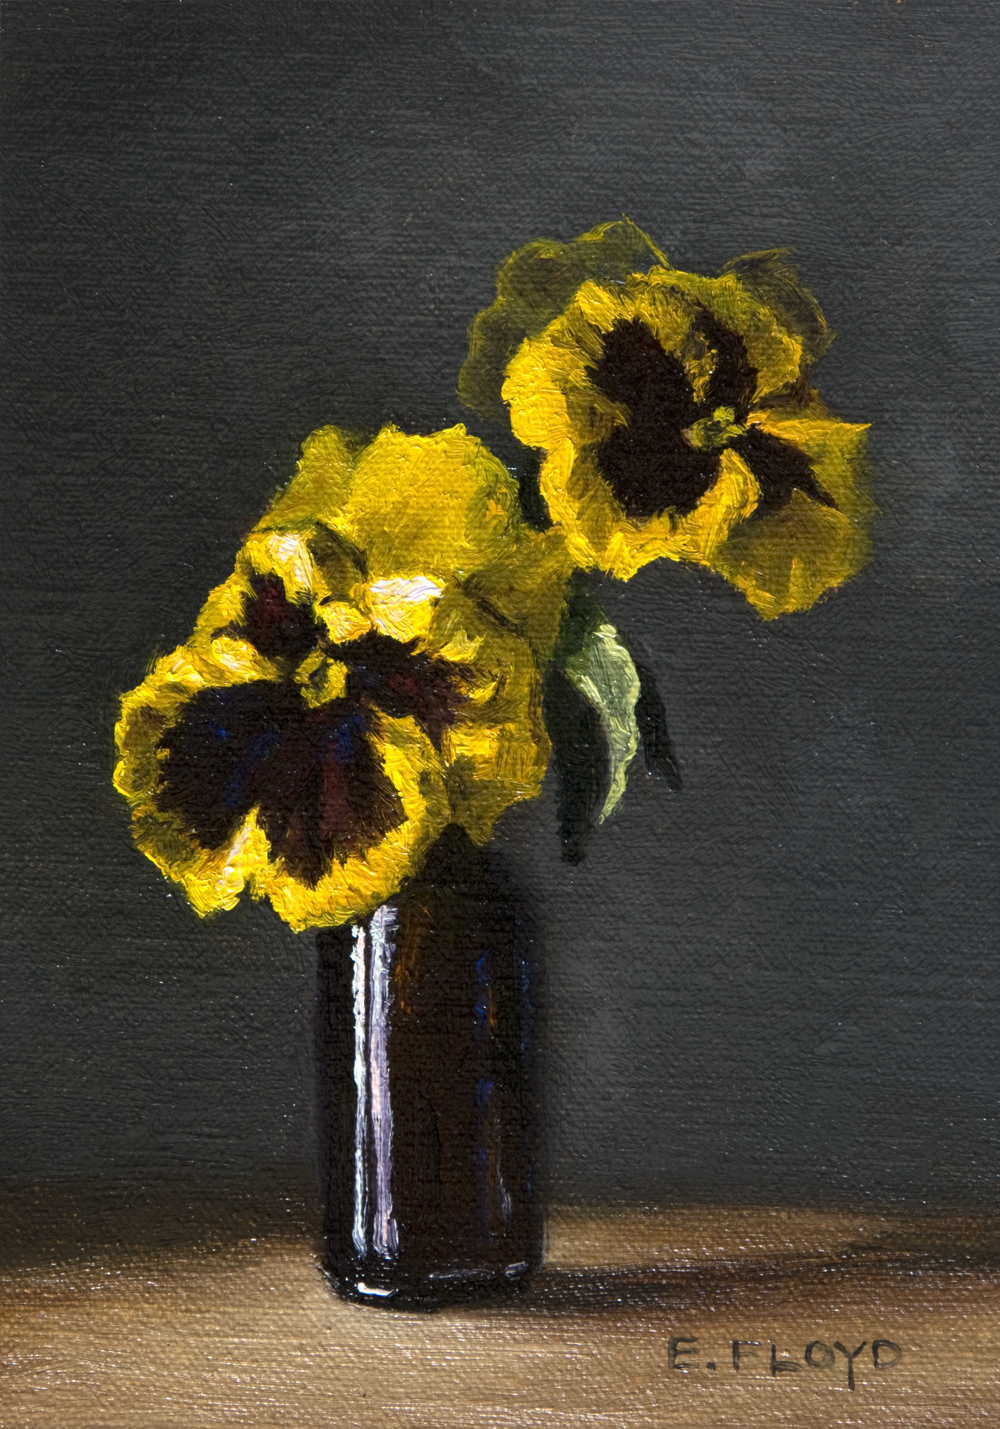 Colossus Yellow by Elizabeth Floyd, 7 x 5 inches, oil on linen panel